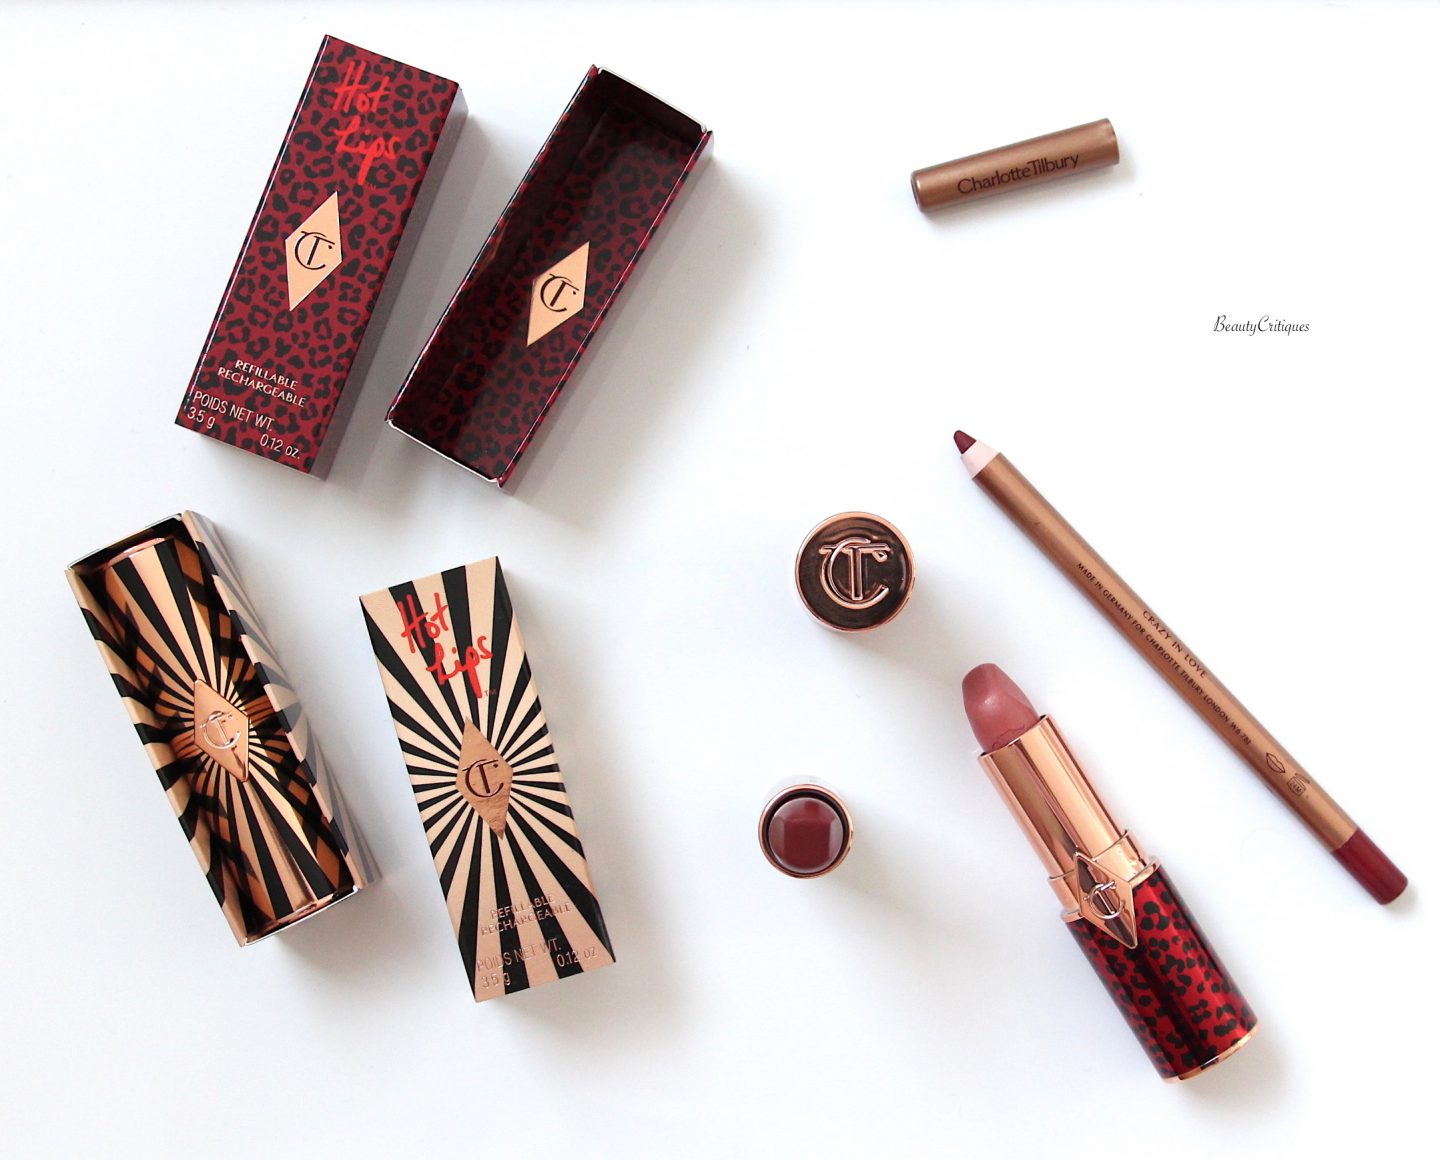 CHARLOTTE TILBURY HOT LIPS 2: LIPSTICK REVIEW AND SWATCHES